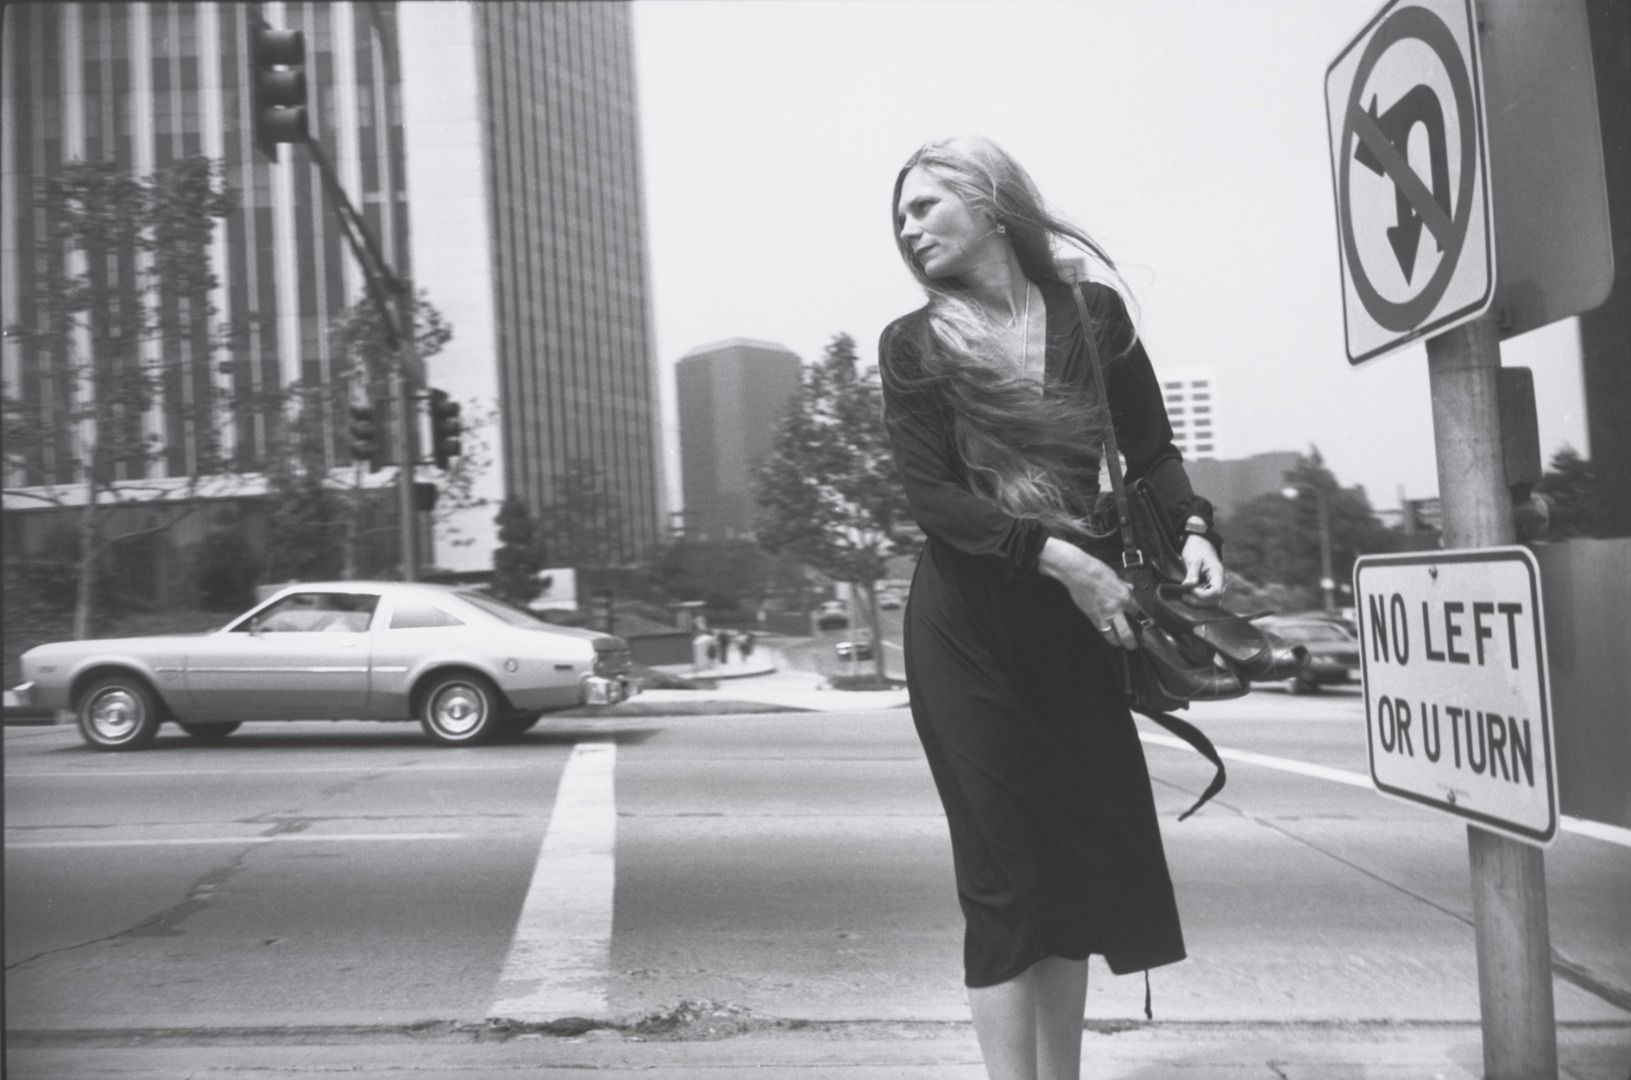 Garry Winogrand: Visions from the Street, Portraits of America